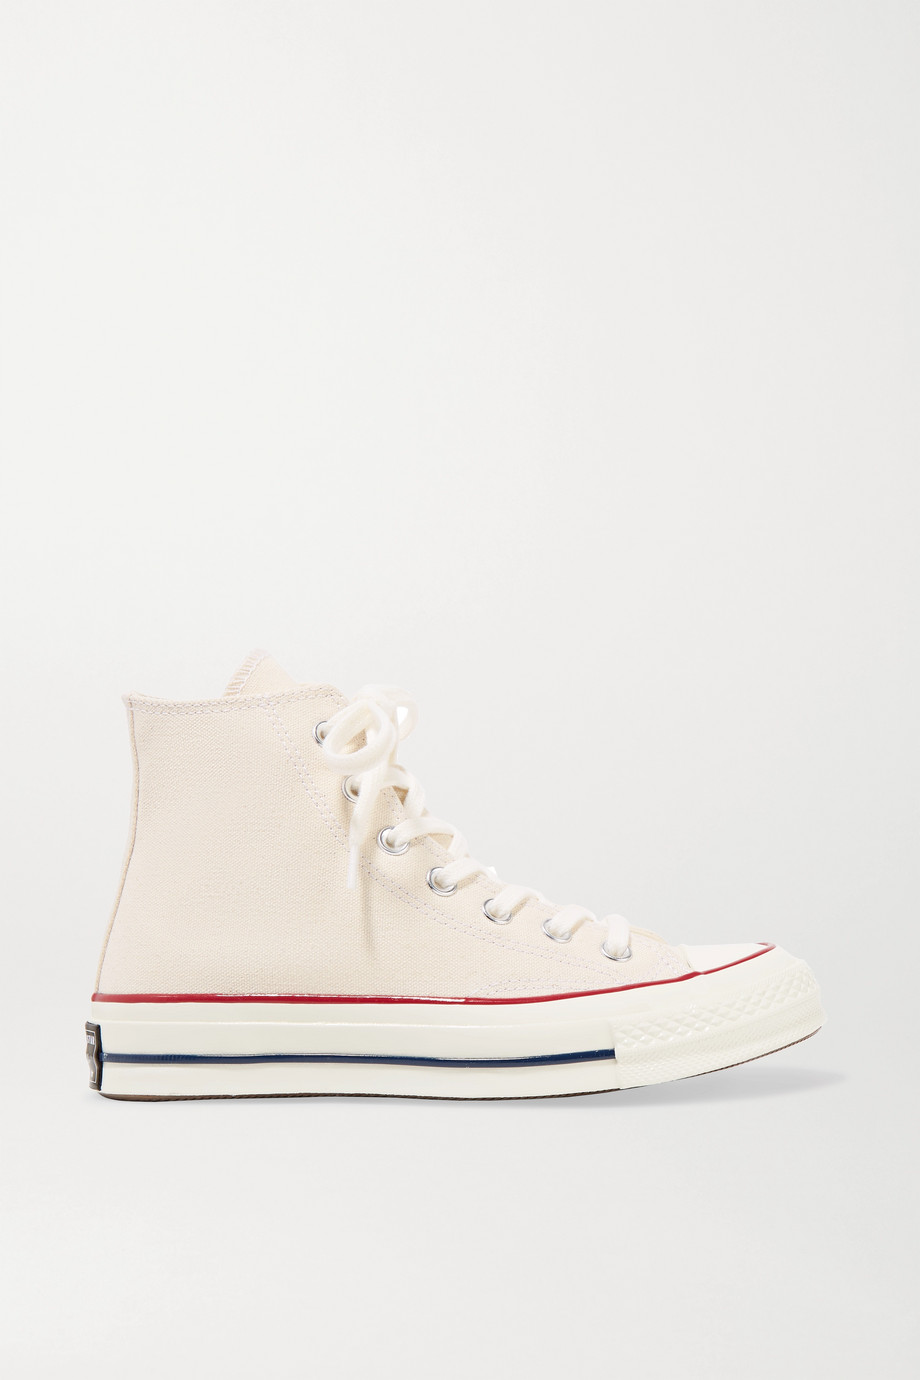 Converse Chuck Taylor All Star 70 canvas high-top sneakers